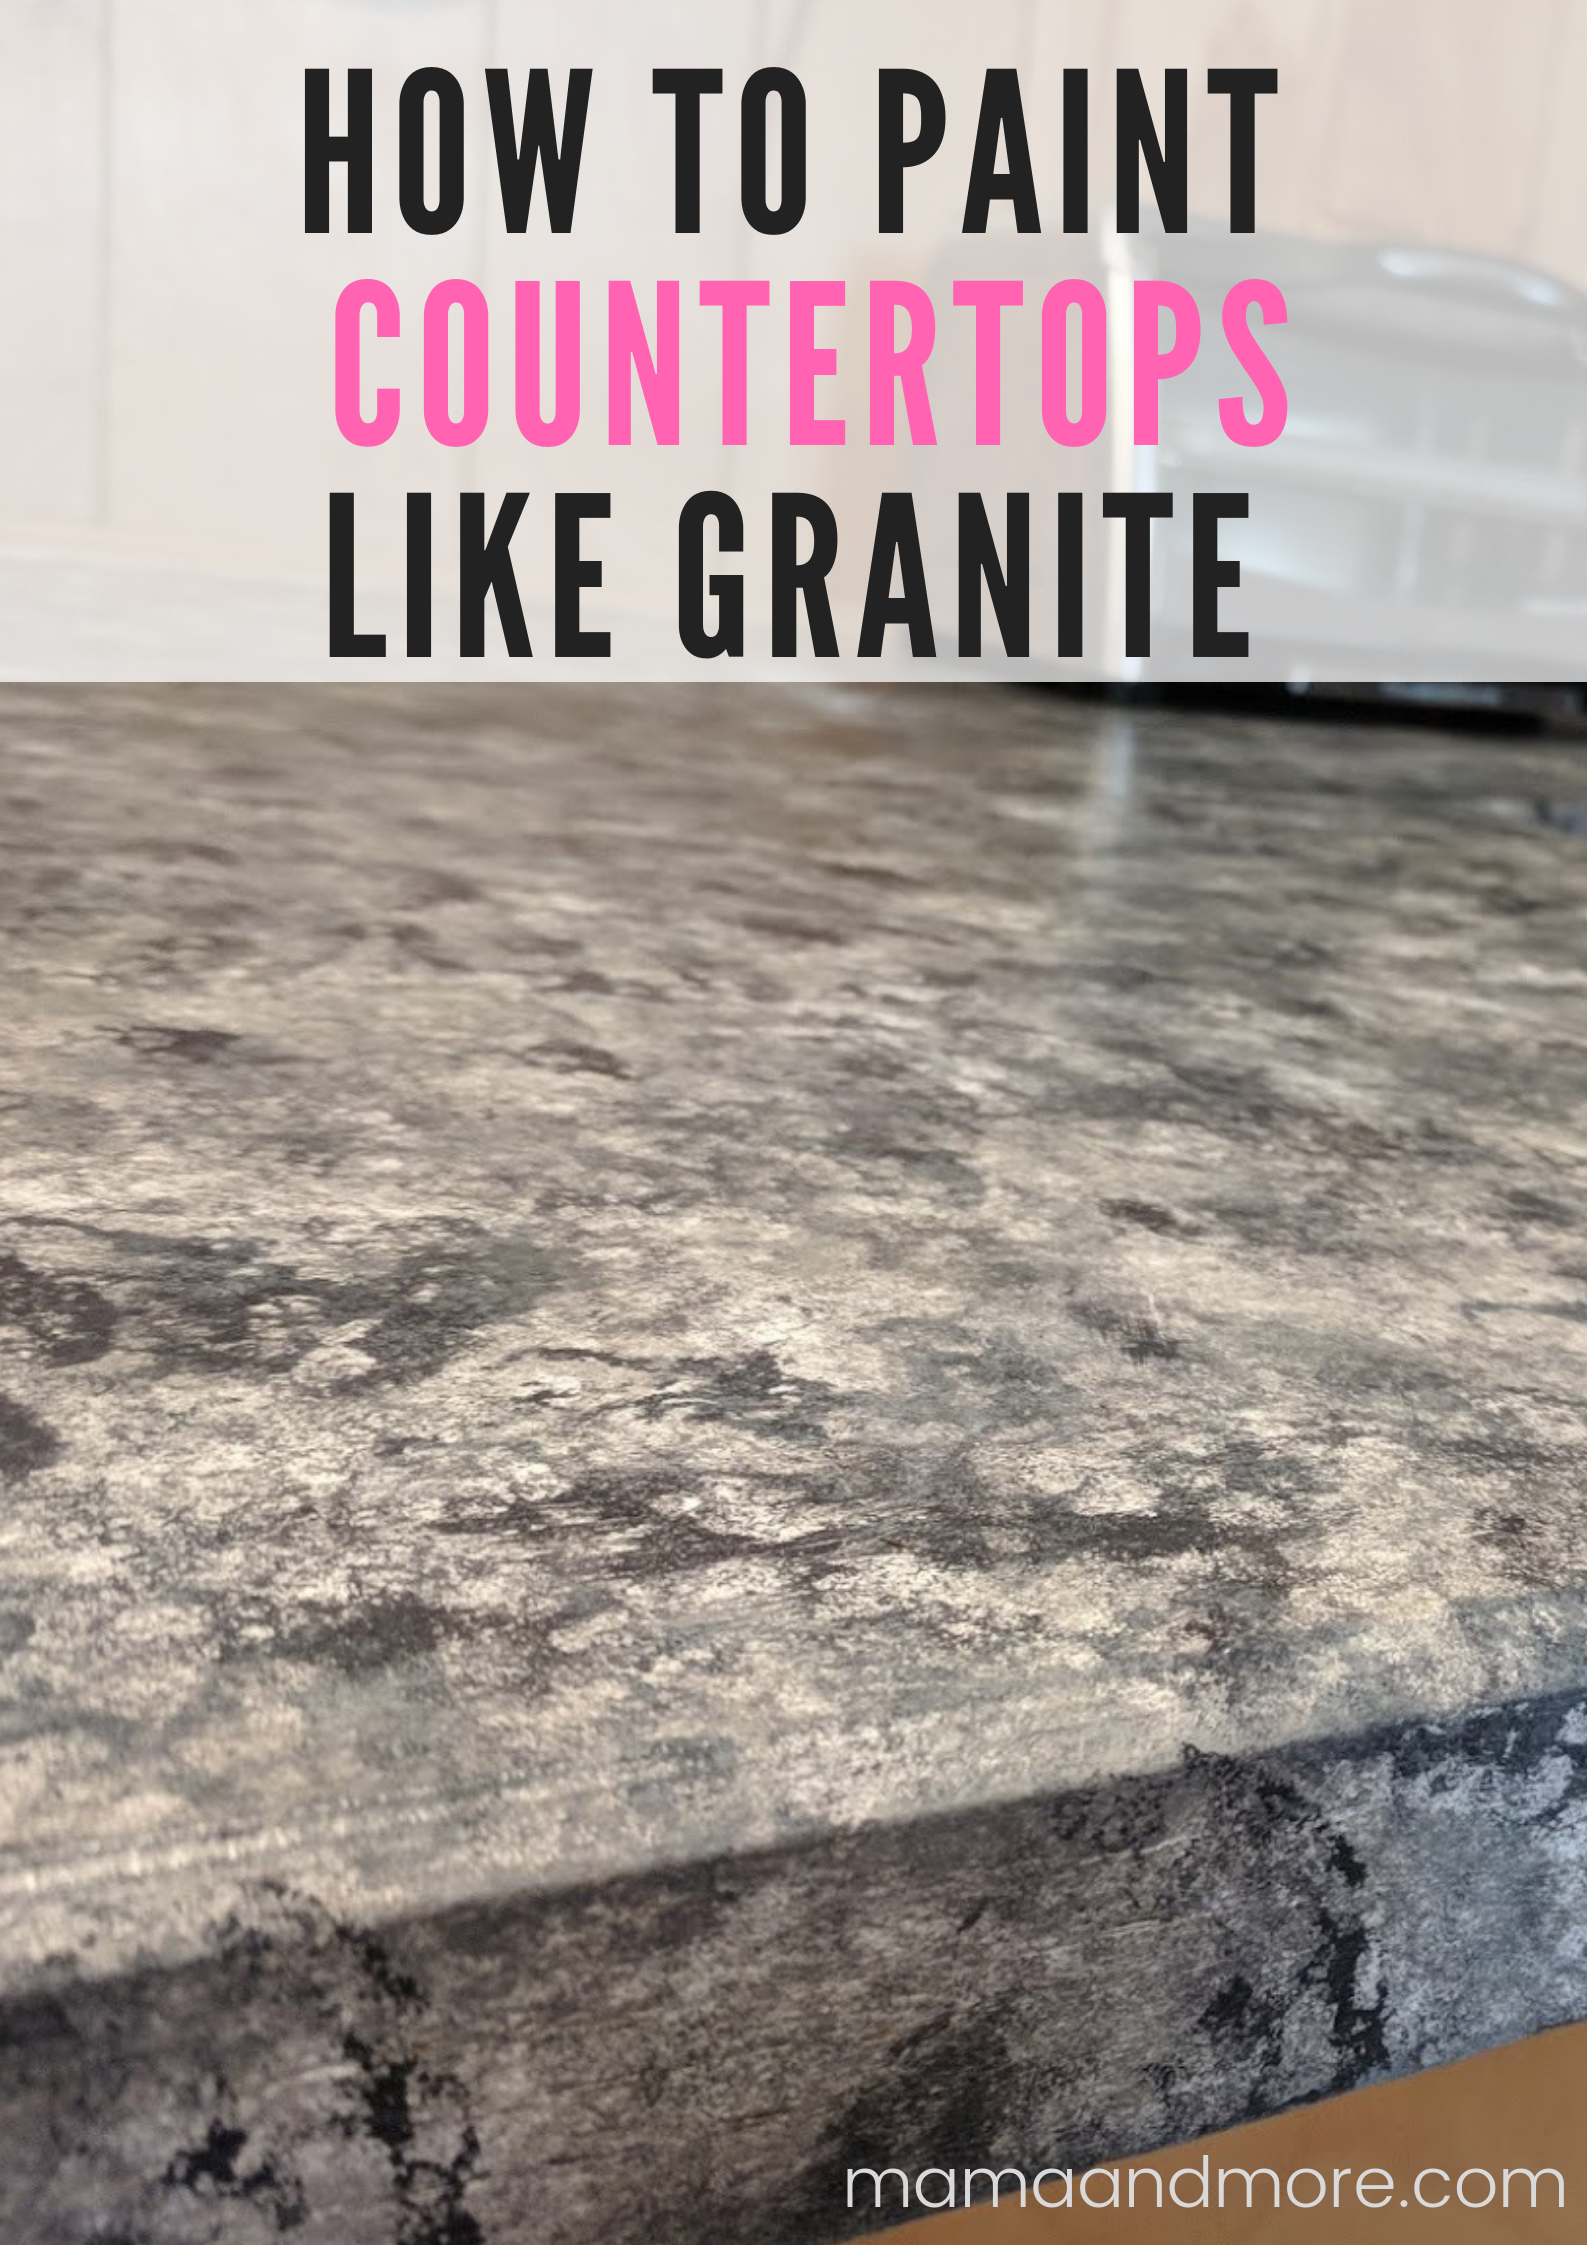 Paint Your Countertops Like Granite